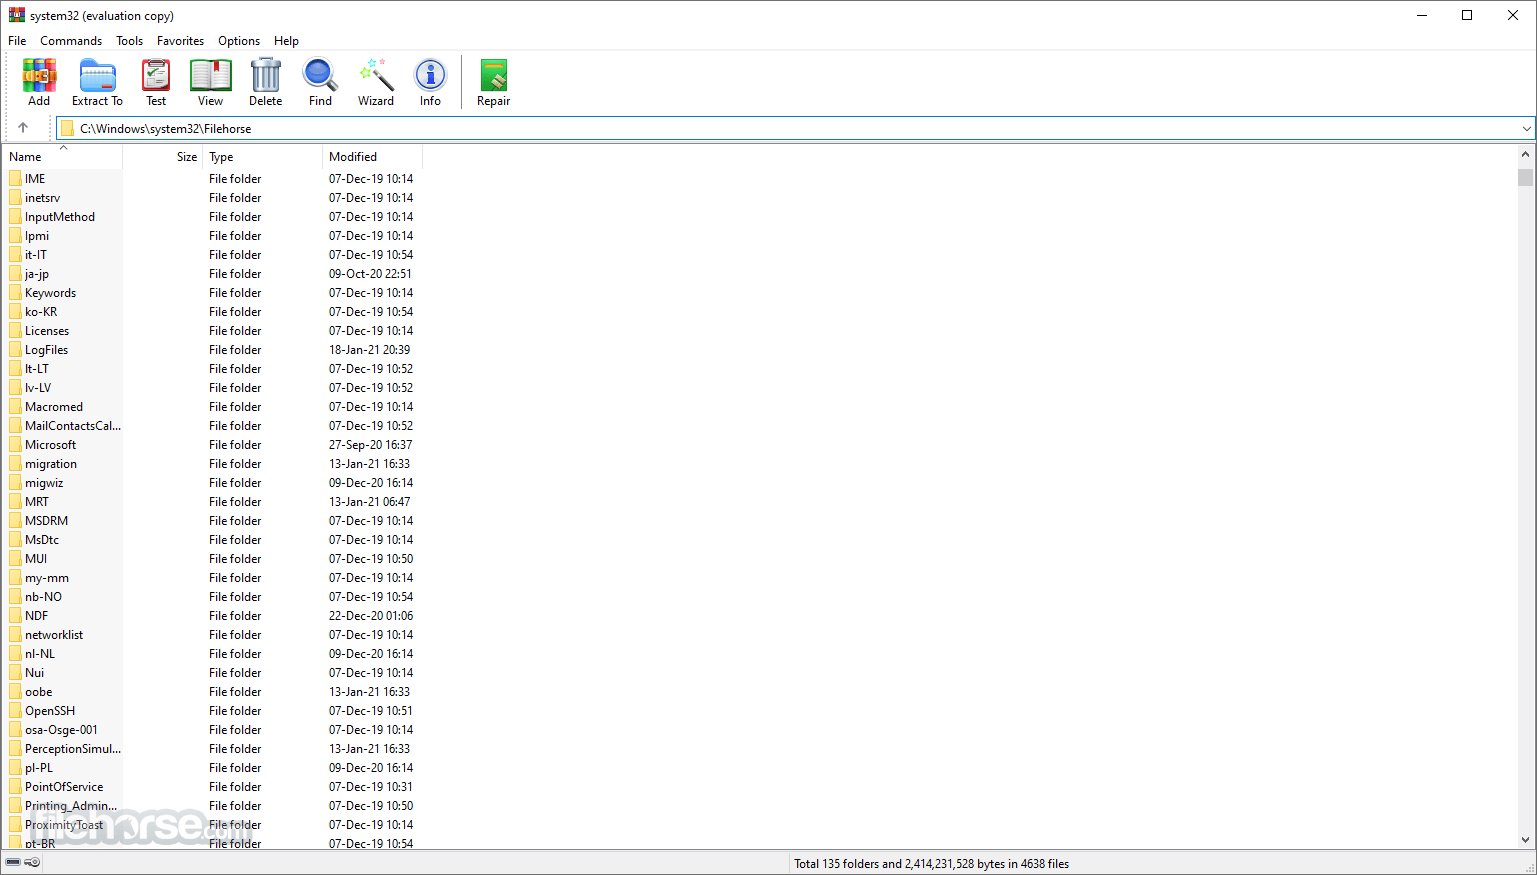 WinRAR 5.50 Beta 5 (32-bit) Screenshot 1